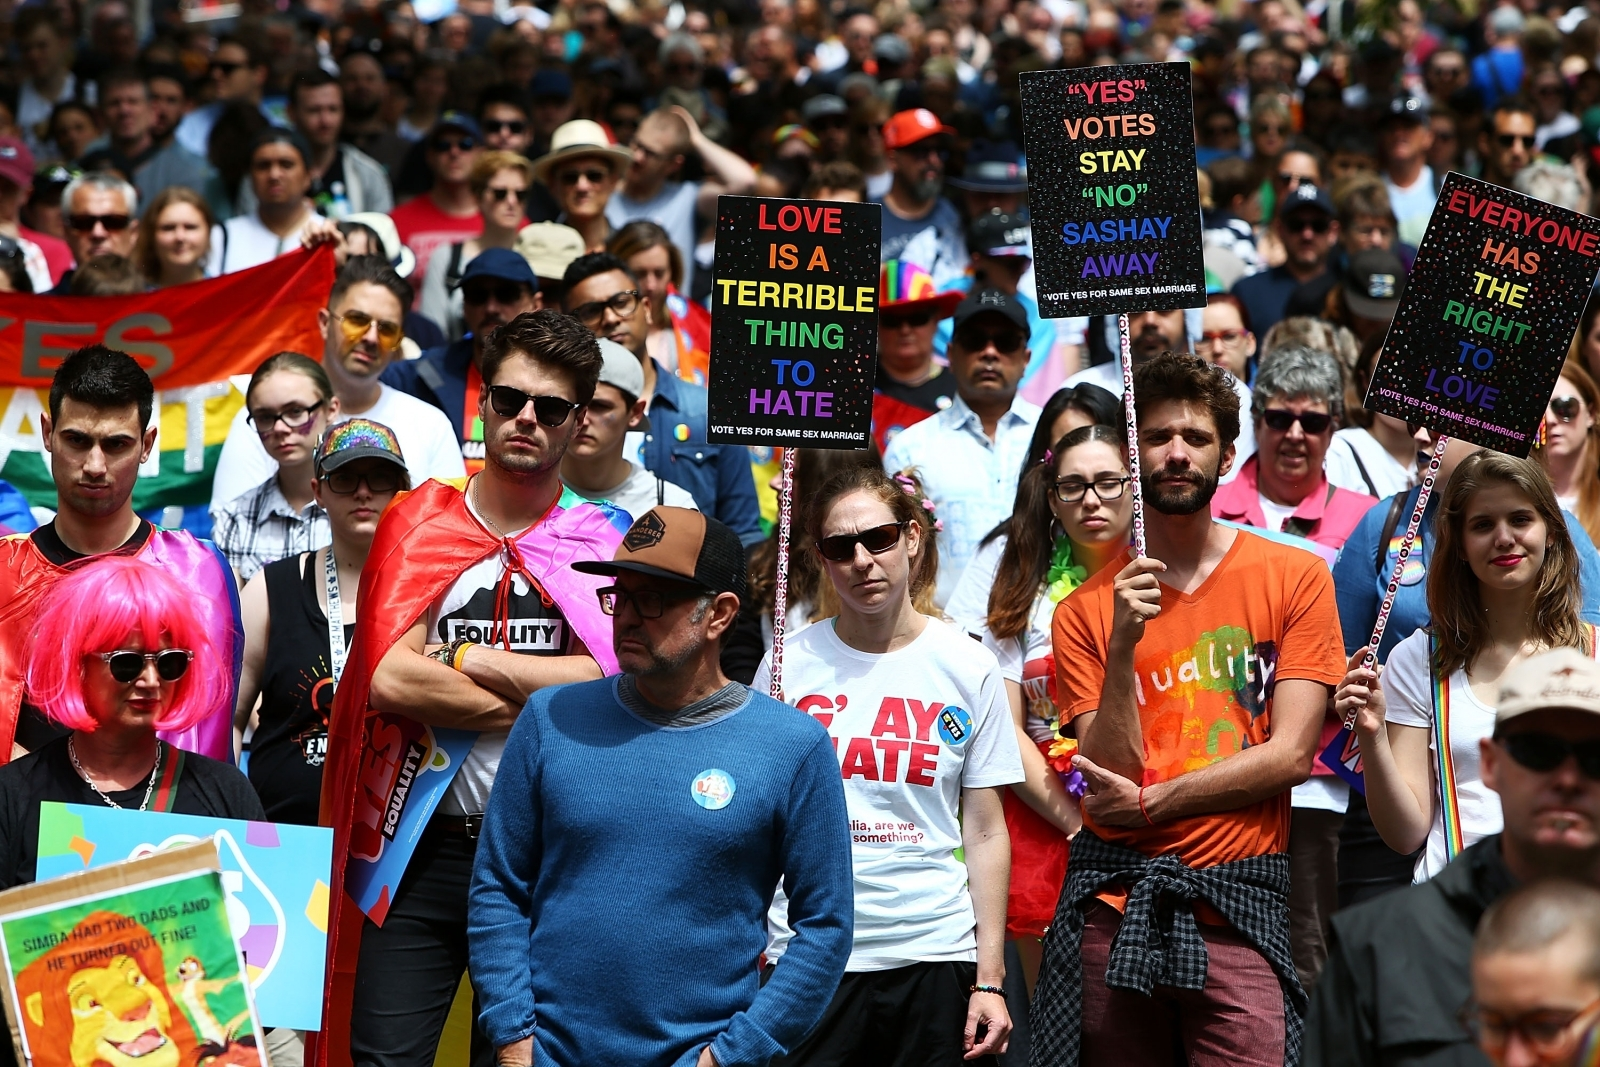 YES March For Marriage Equality Australia